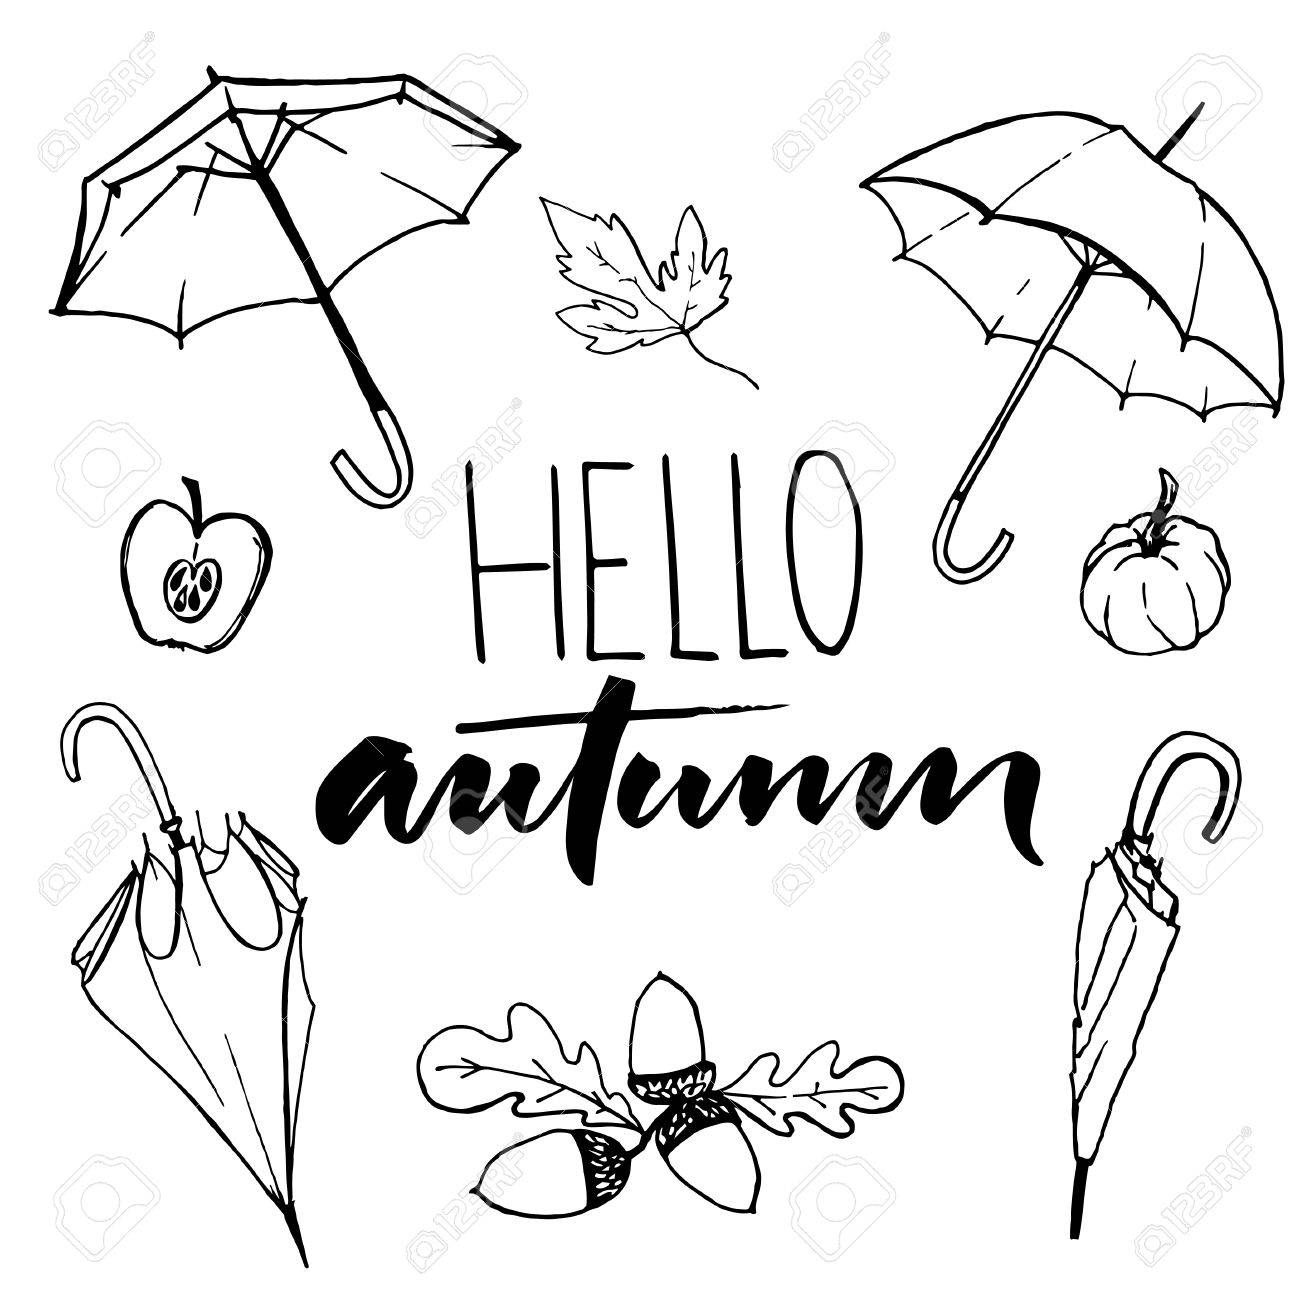 Hello autumn text and sketches of open and closed umbrellas acorns pumpkin and half